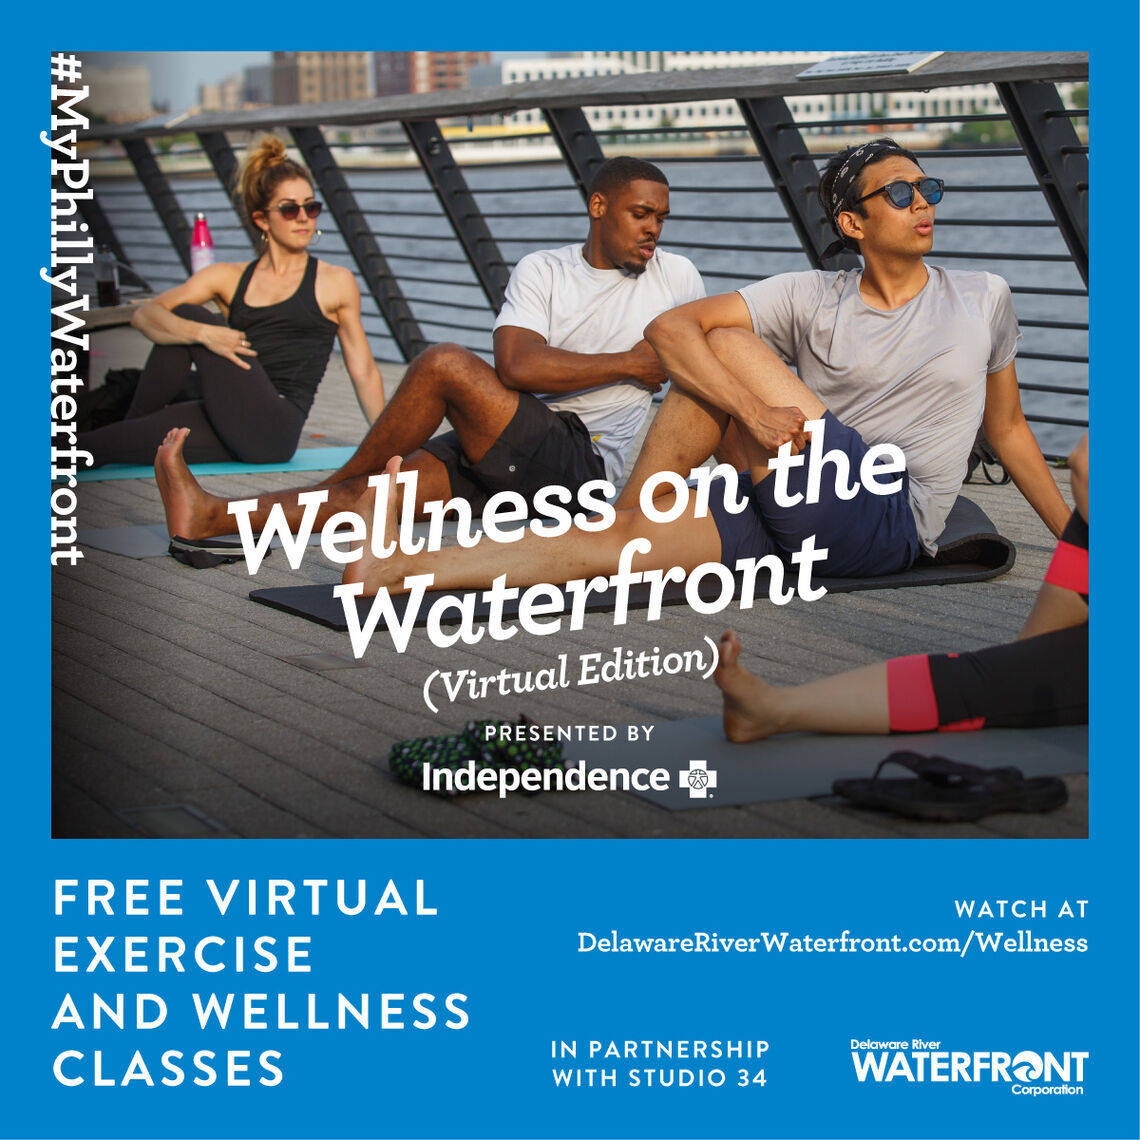 wellnessonthewaterfront square